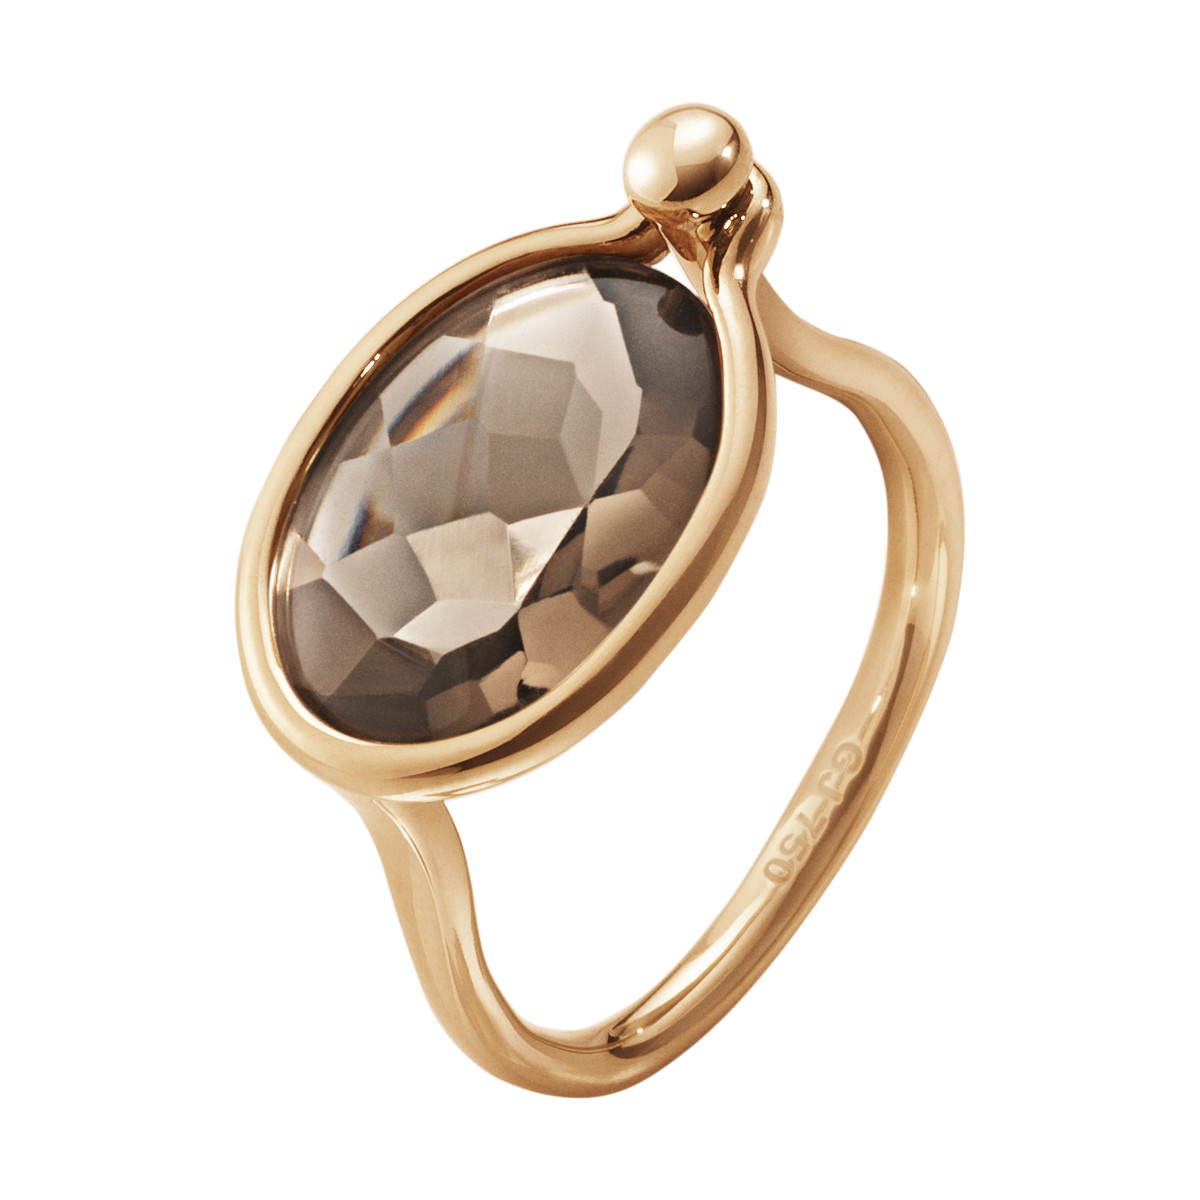 Georg Jensen SAVANNAH ring medium - 10012242 Størrelse 54